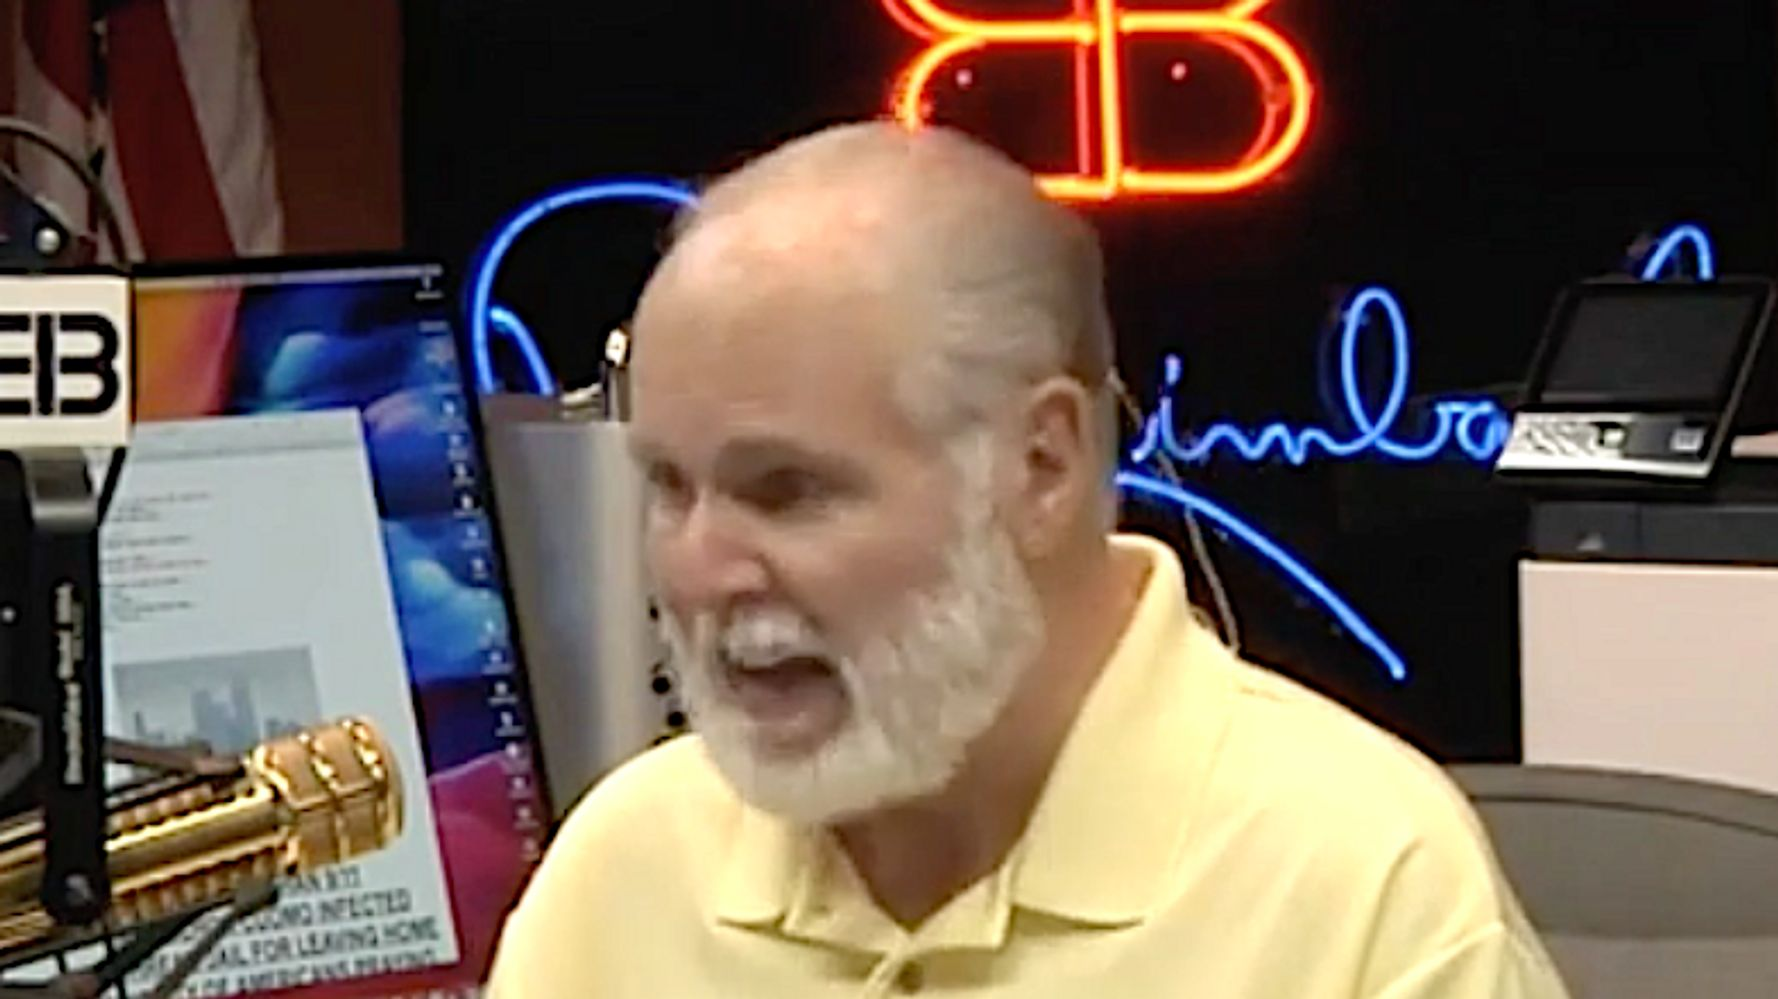 Rush Limbaugh: Economy Being Destroyed 'Under The Guise' Of Saving Lives